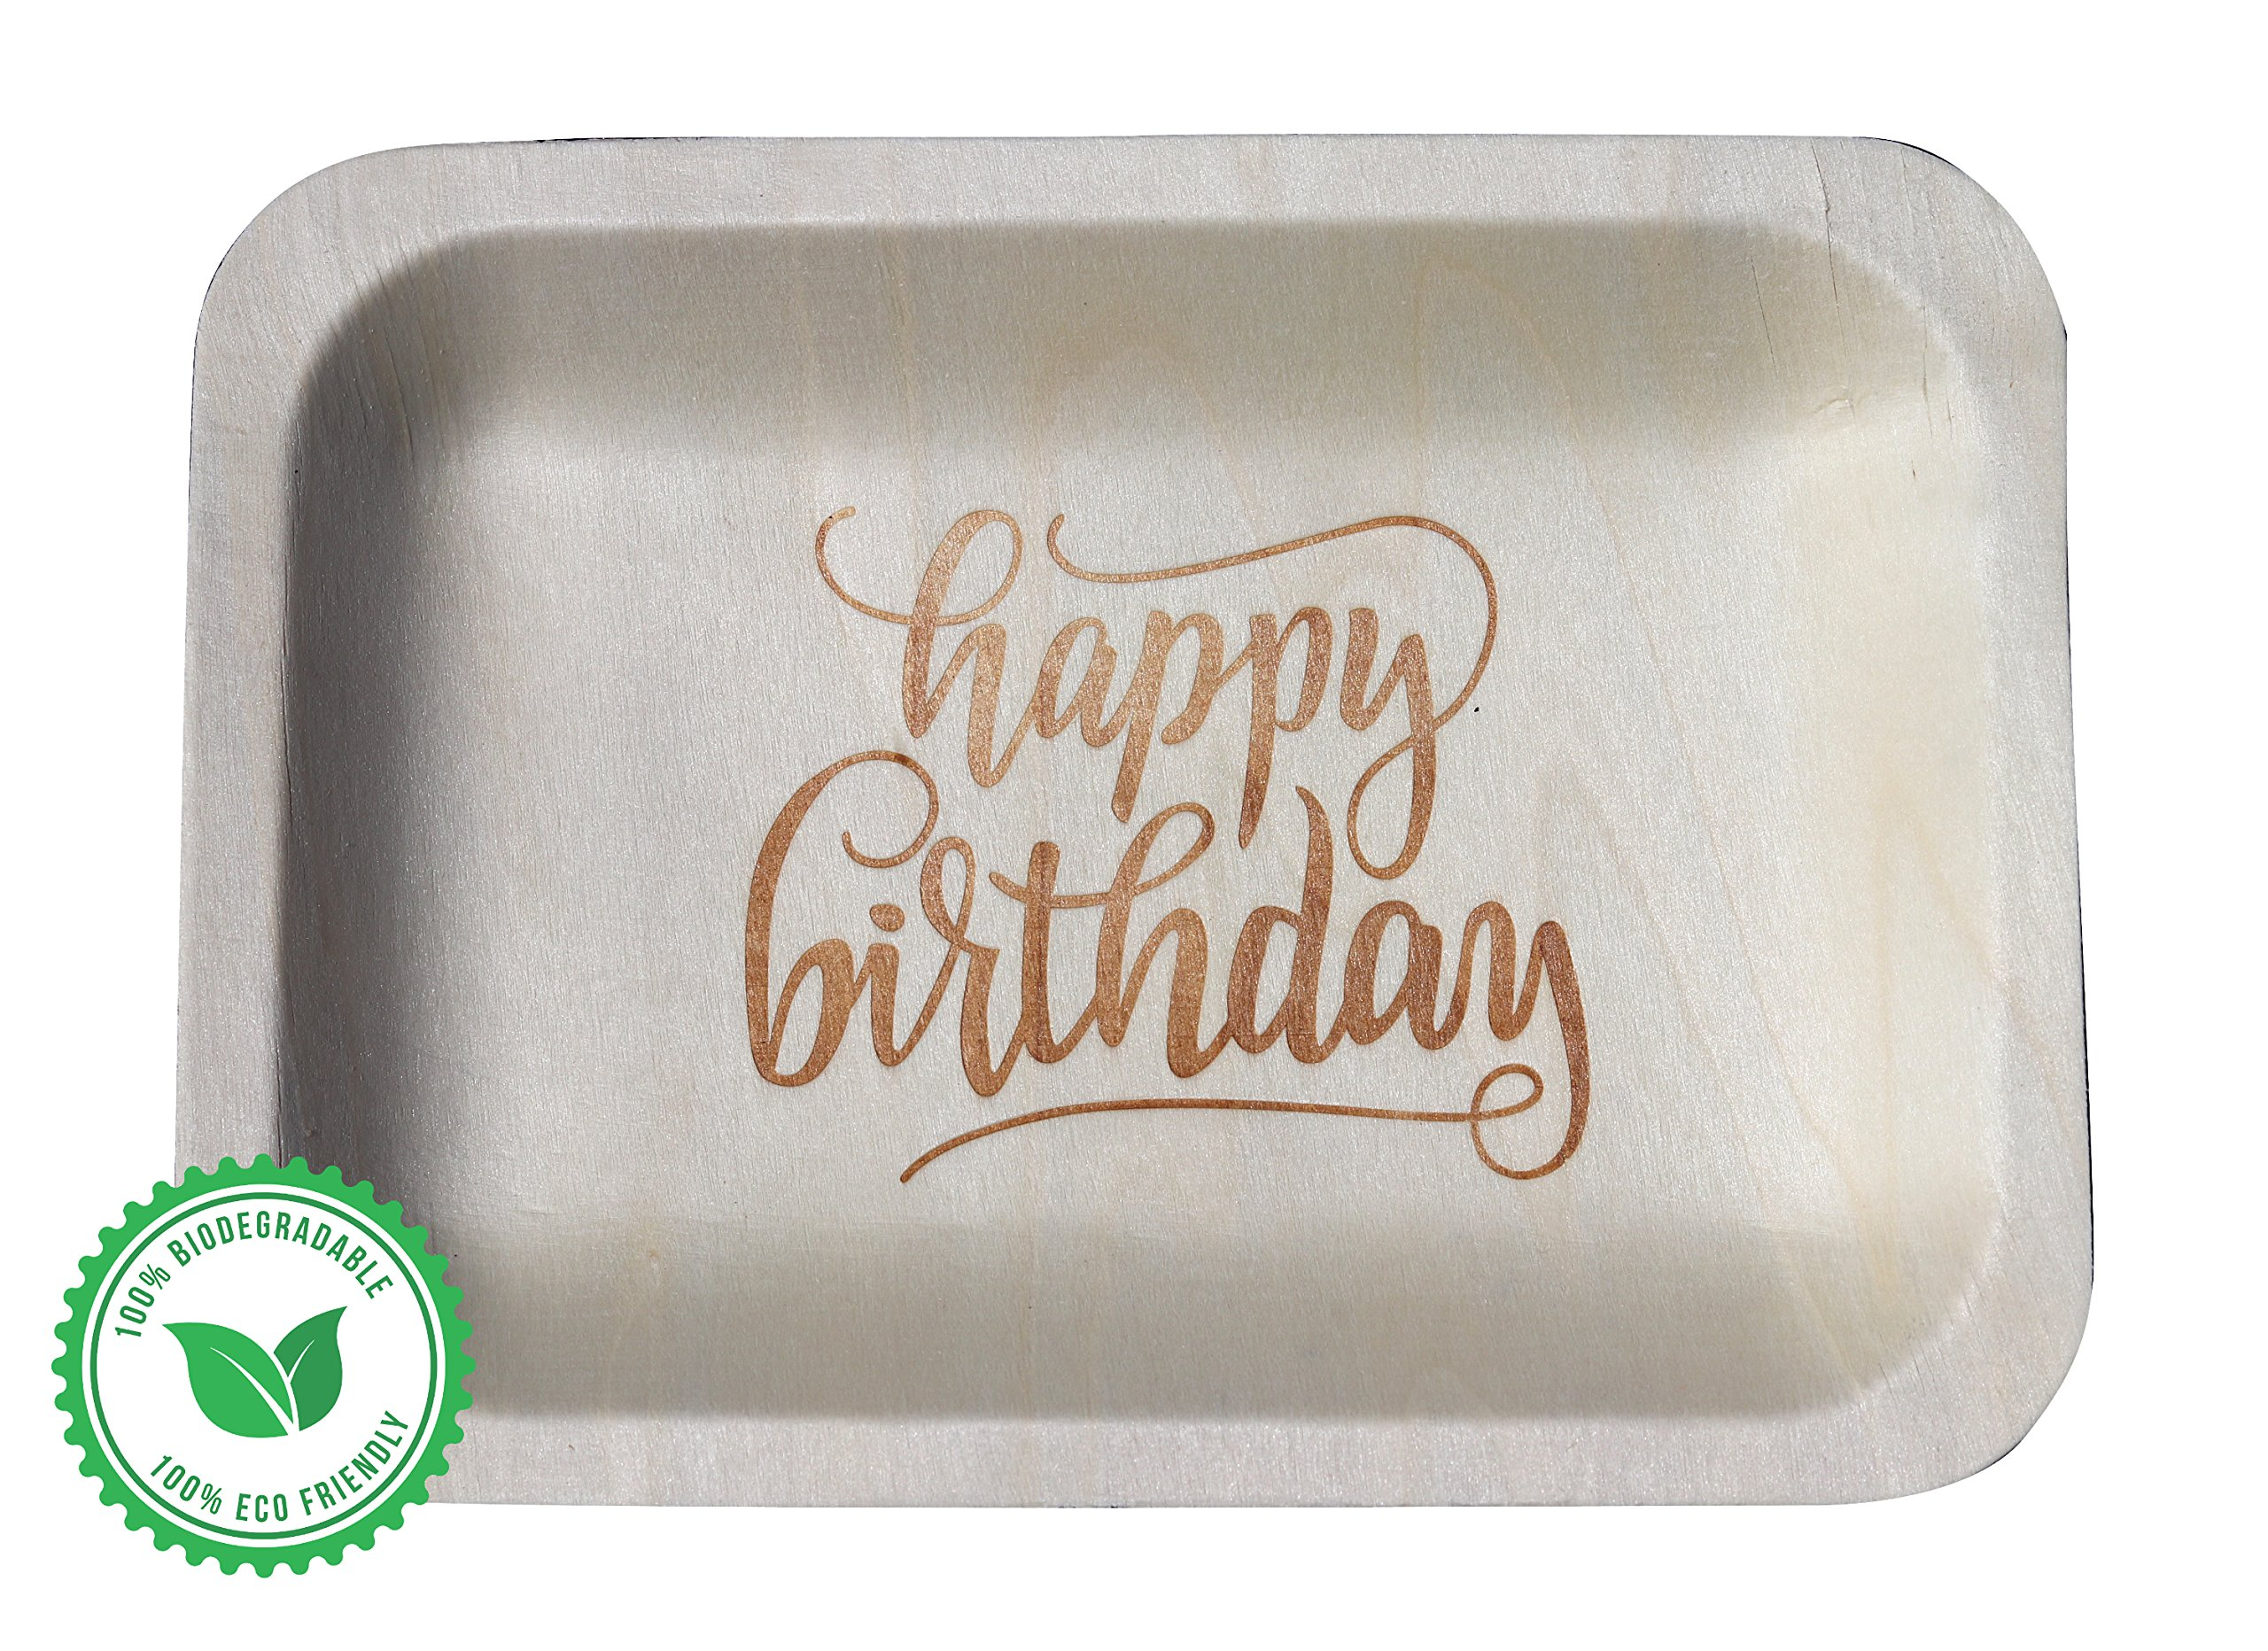 ''Happy Birthday'' StatementWare Disposable Birthday Plates (50-pack)—100% Natural and Eco-Friendly, Elegant Alternative to Happy Birthday Plates, Plastic Party Plates, and Cake Plates (7.5'' x 5.5'')